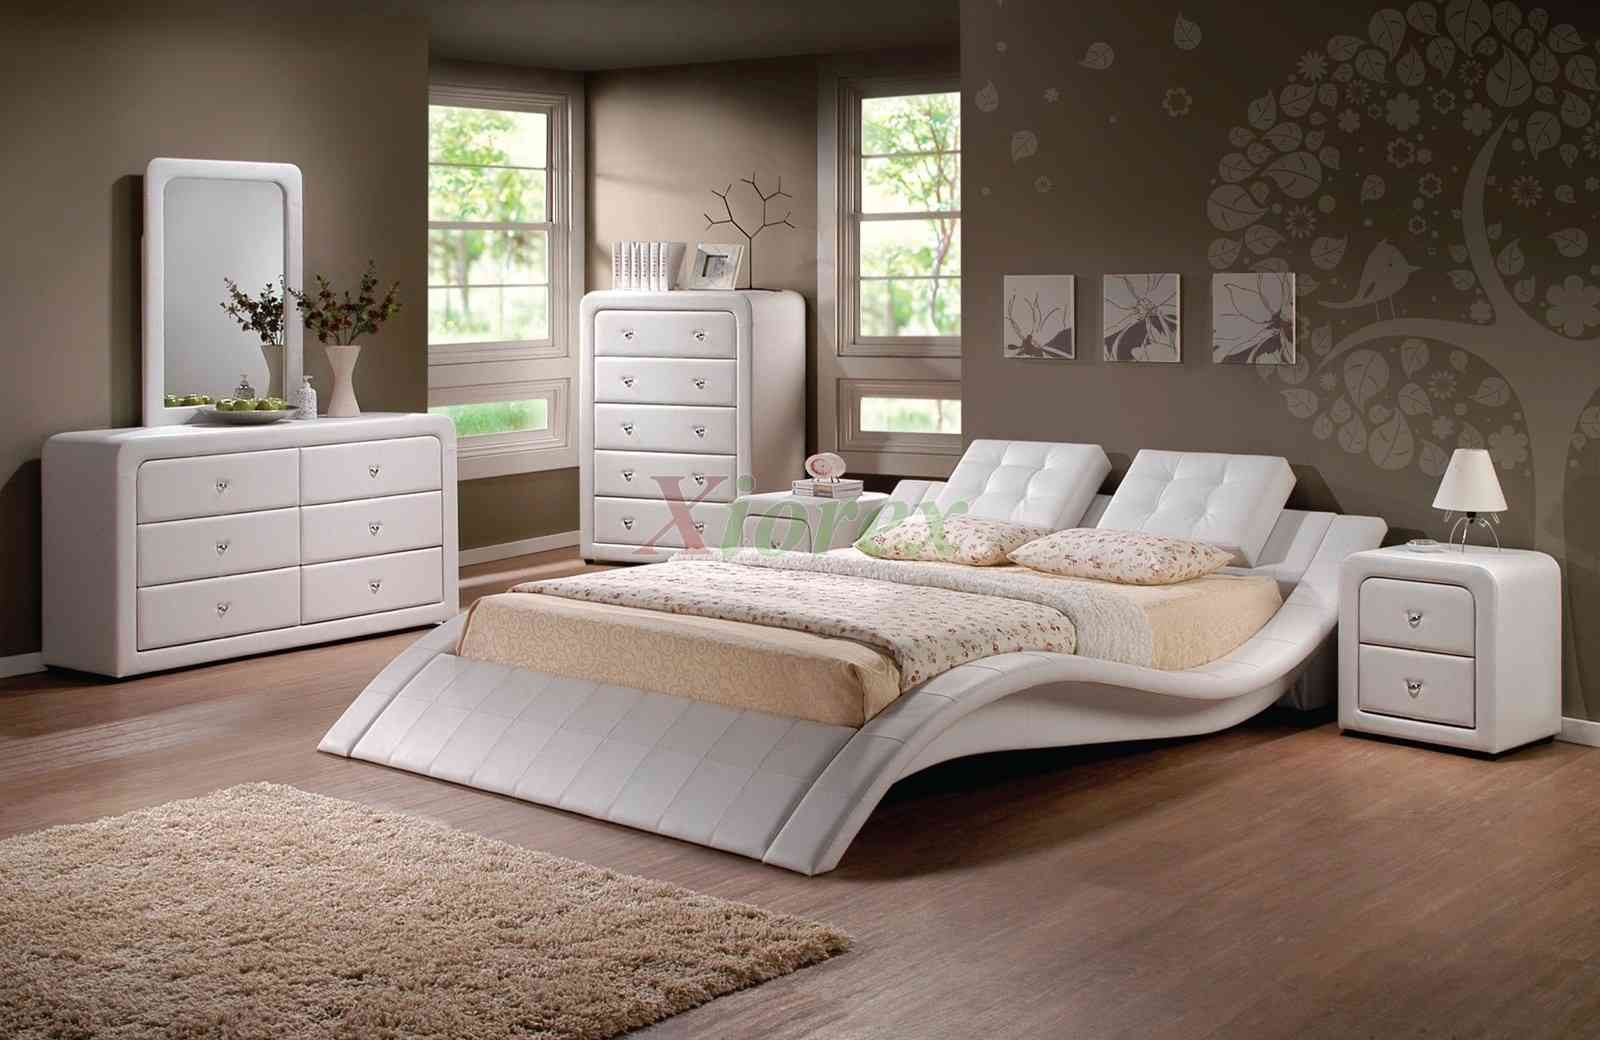 Amazing Bedrooms For Bedroom Furniture Deals Also Home Bedroom Adorable Fancy Bedroom Sets Design Decoration